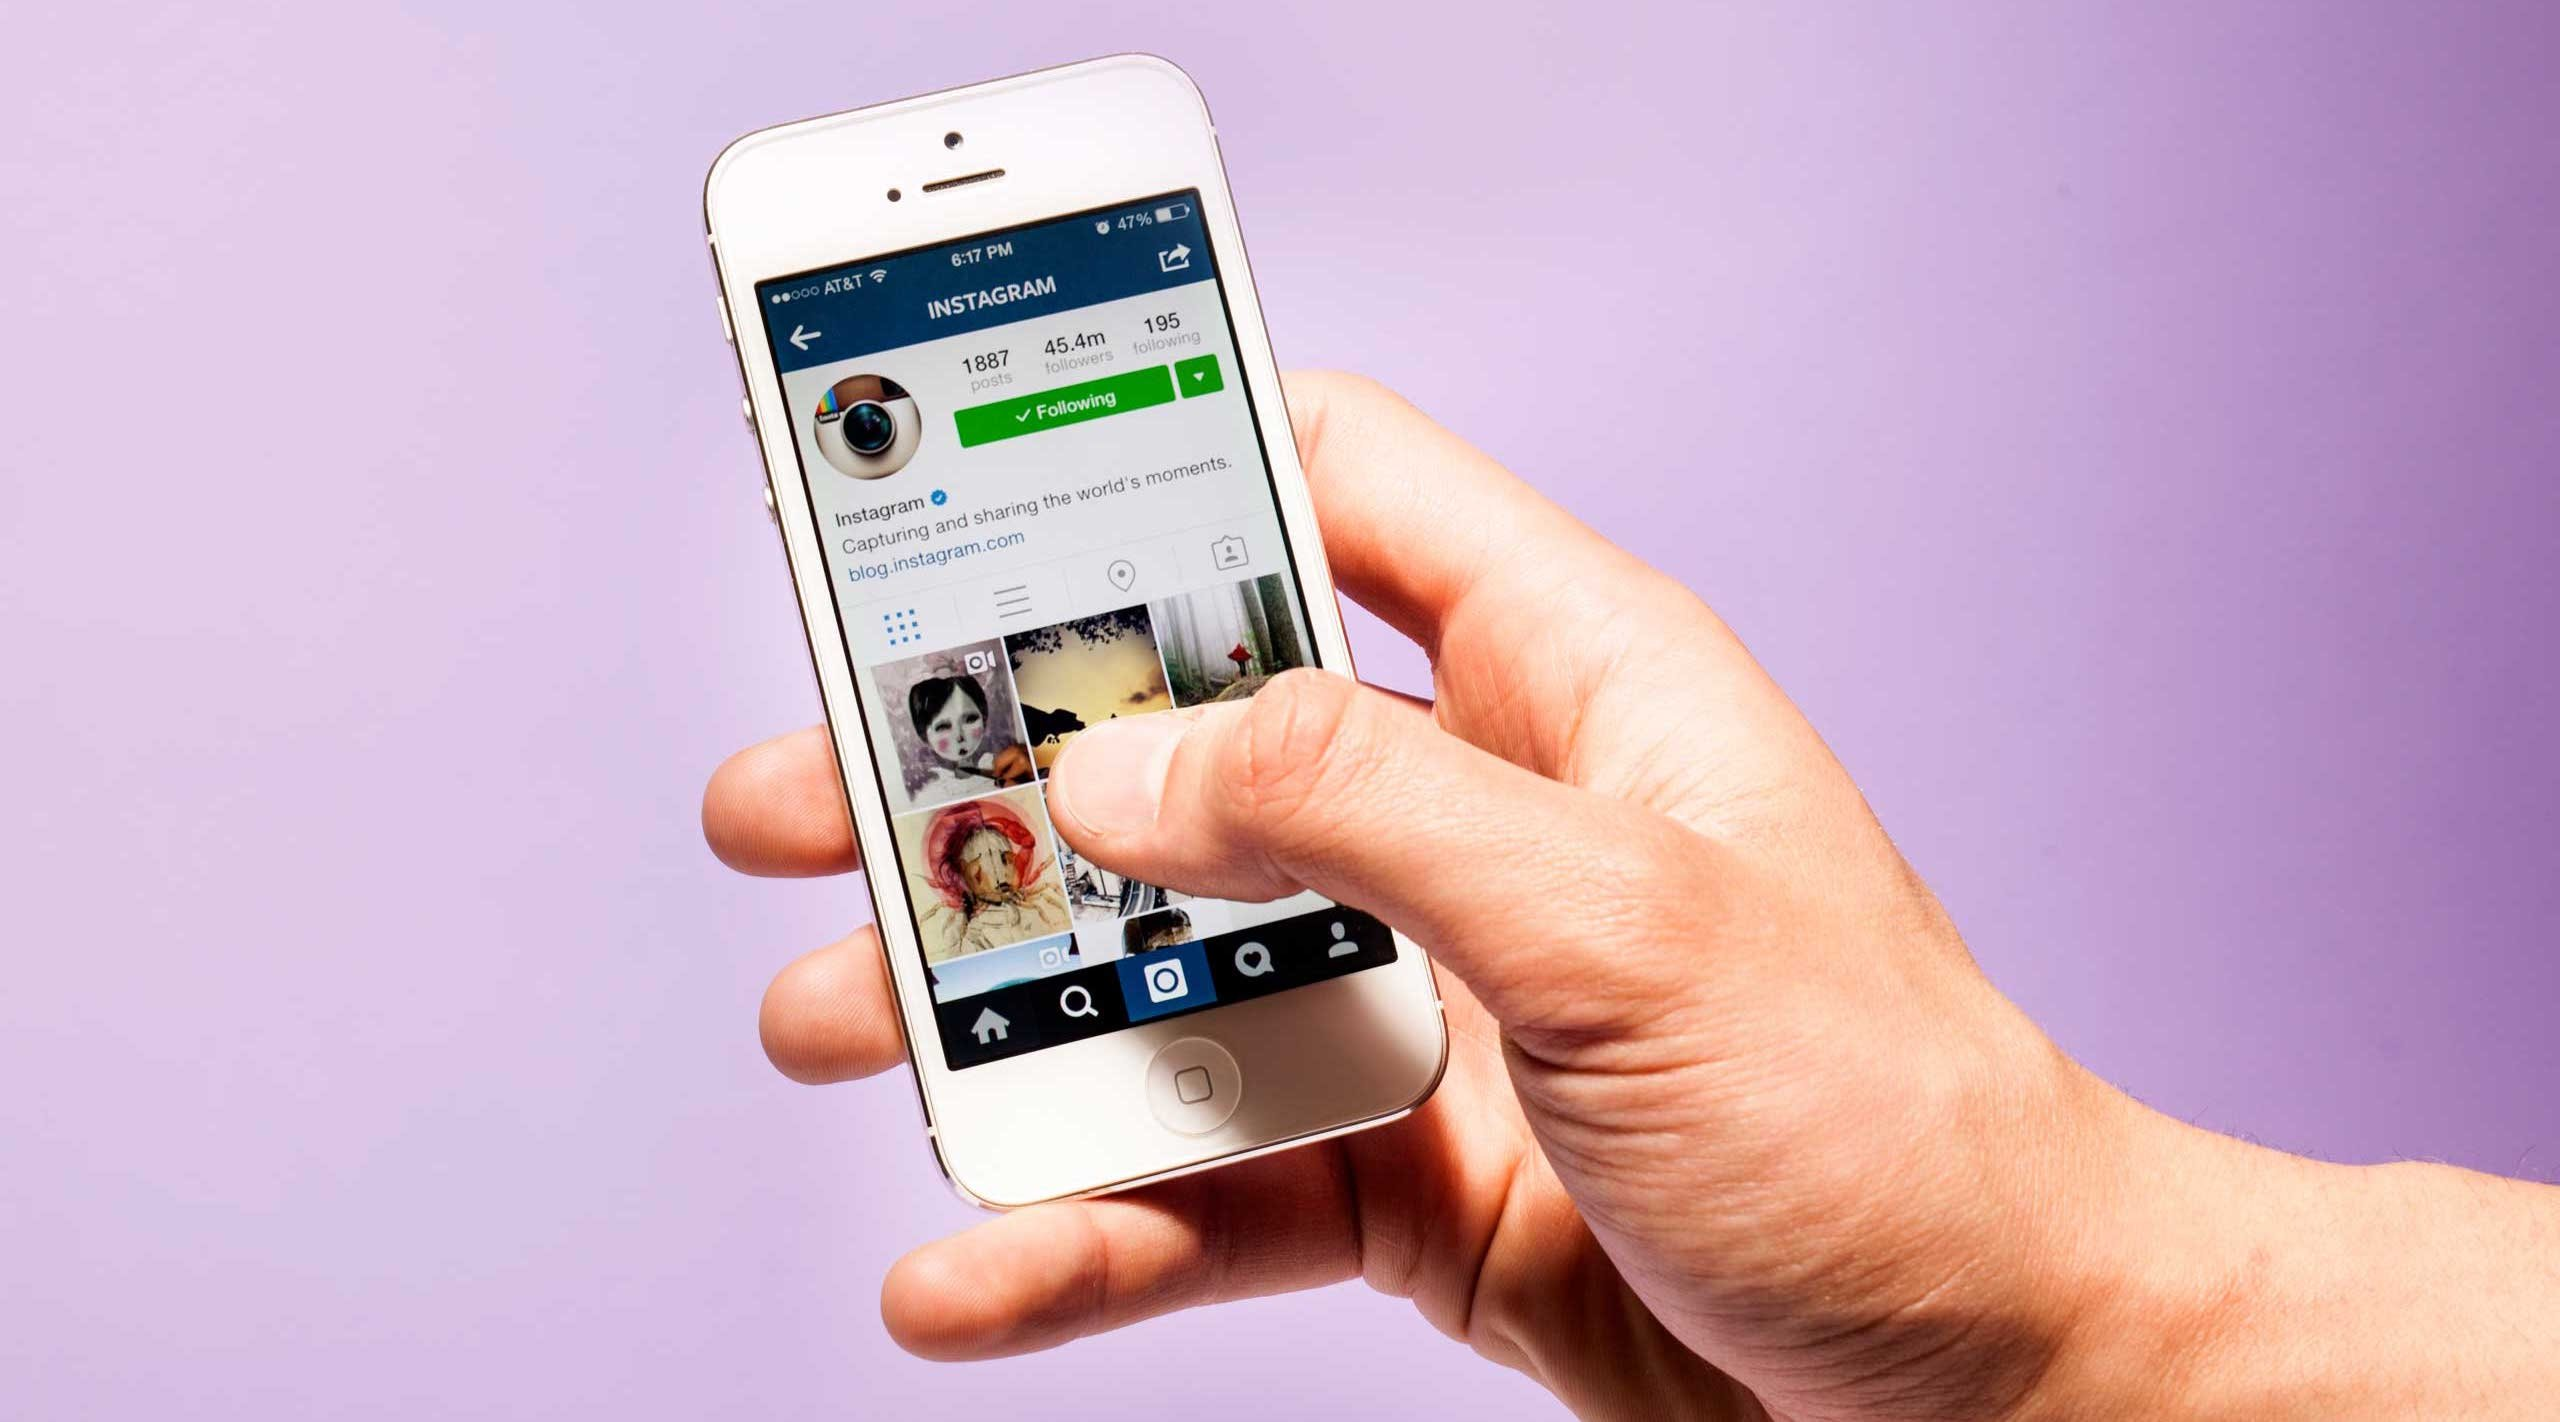 Here's how we use Instagram stories in our inbound marketing strategy